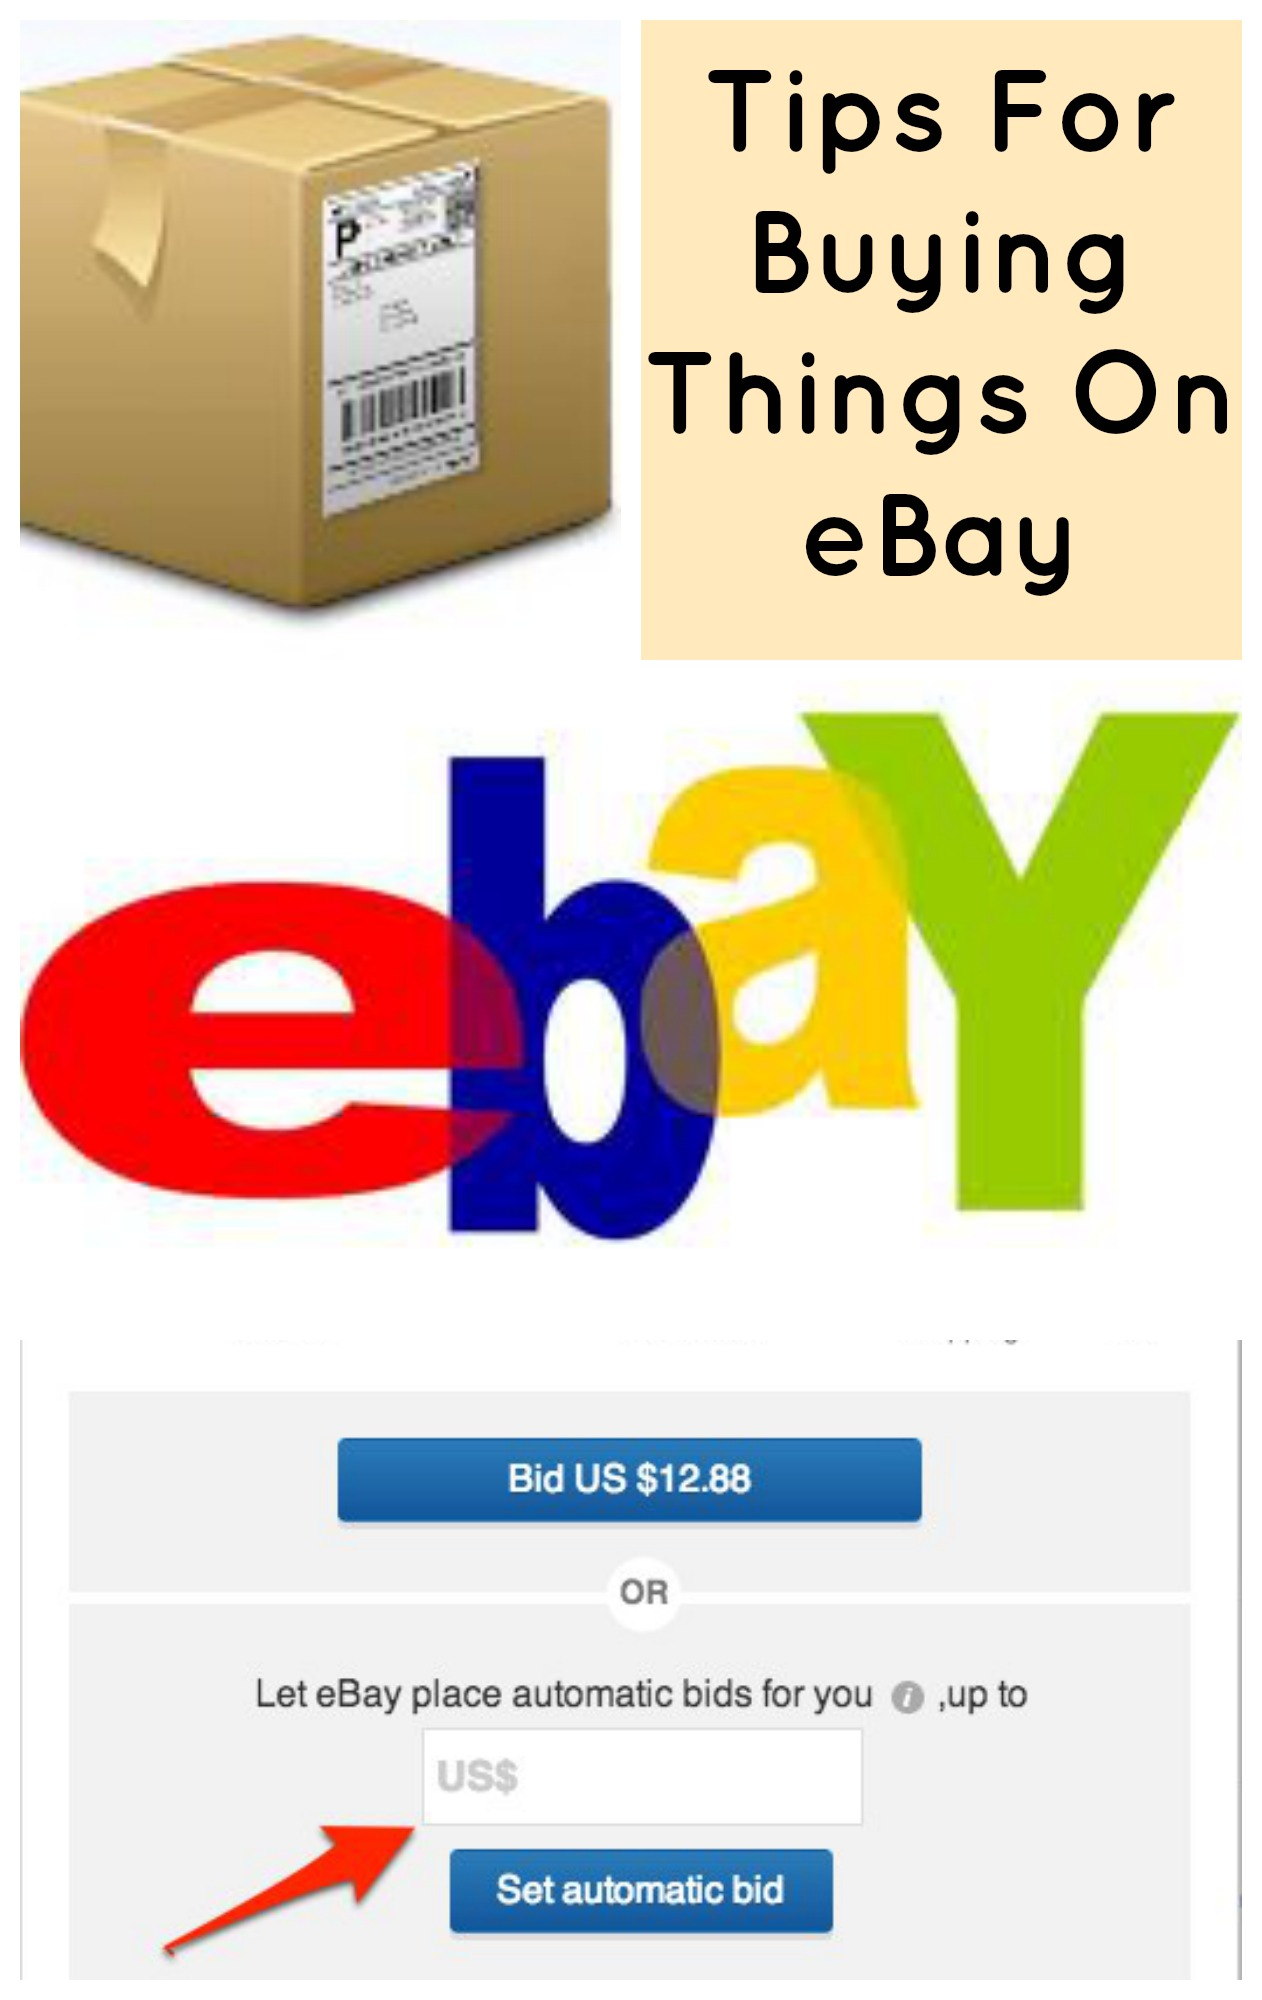 Tips For Buying Things On Ebay